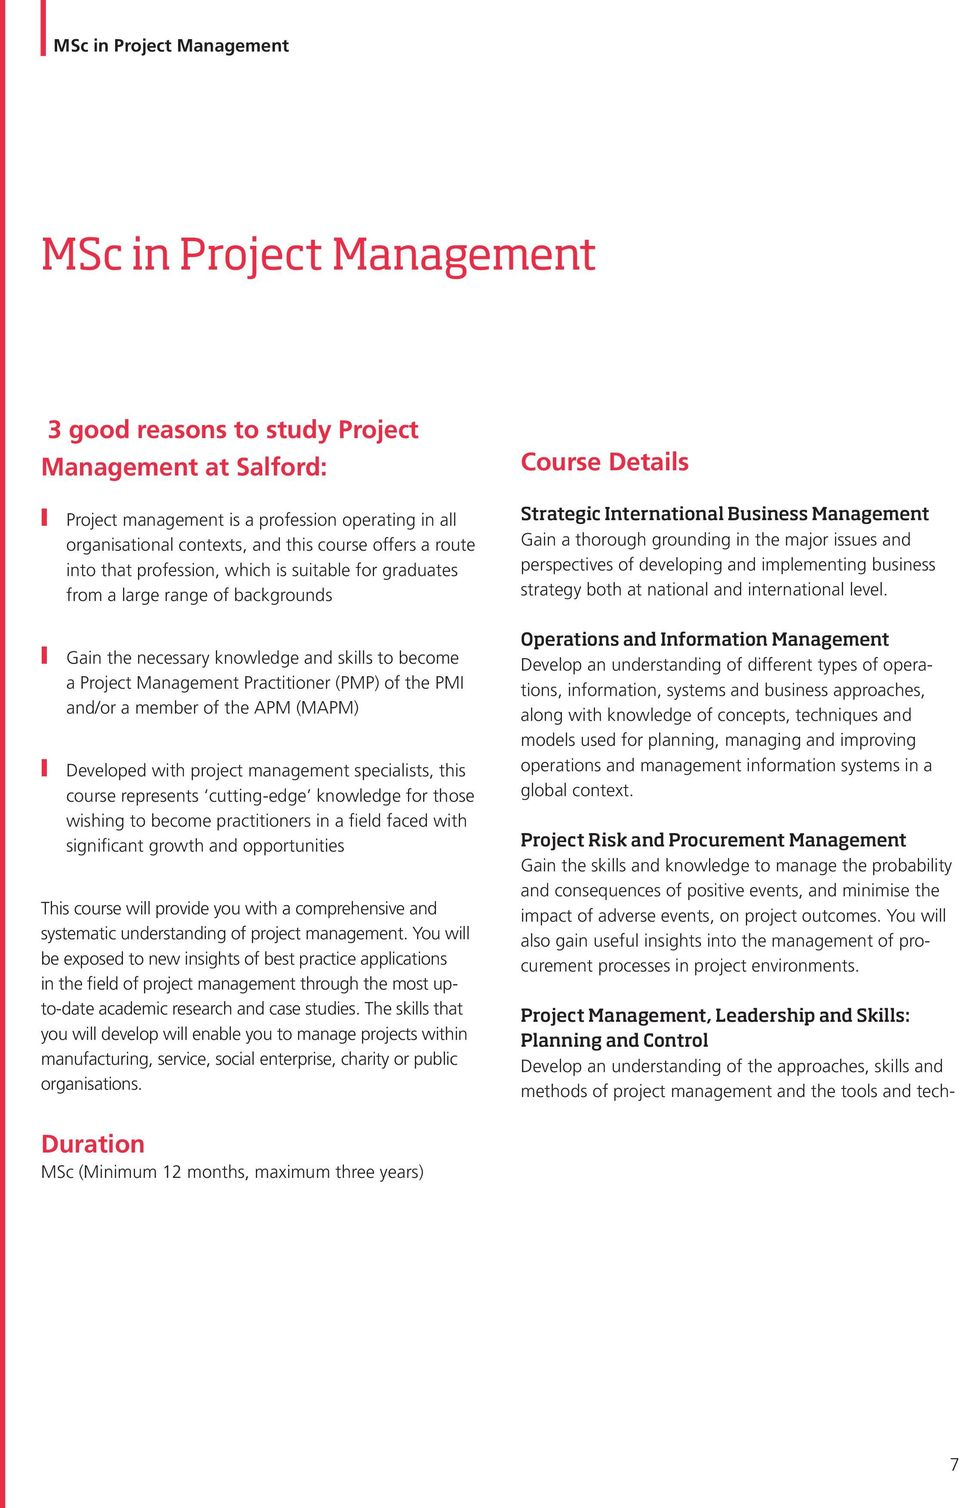 PMI and/or a member of the APM (MAPM) Developed with project management specialists, this course represents cutting-edge knowledge for those wishing to become practitioners in a field faced with